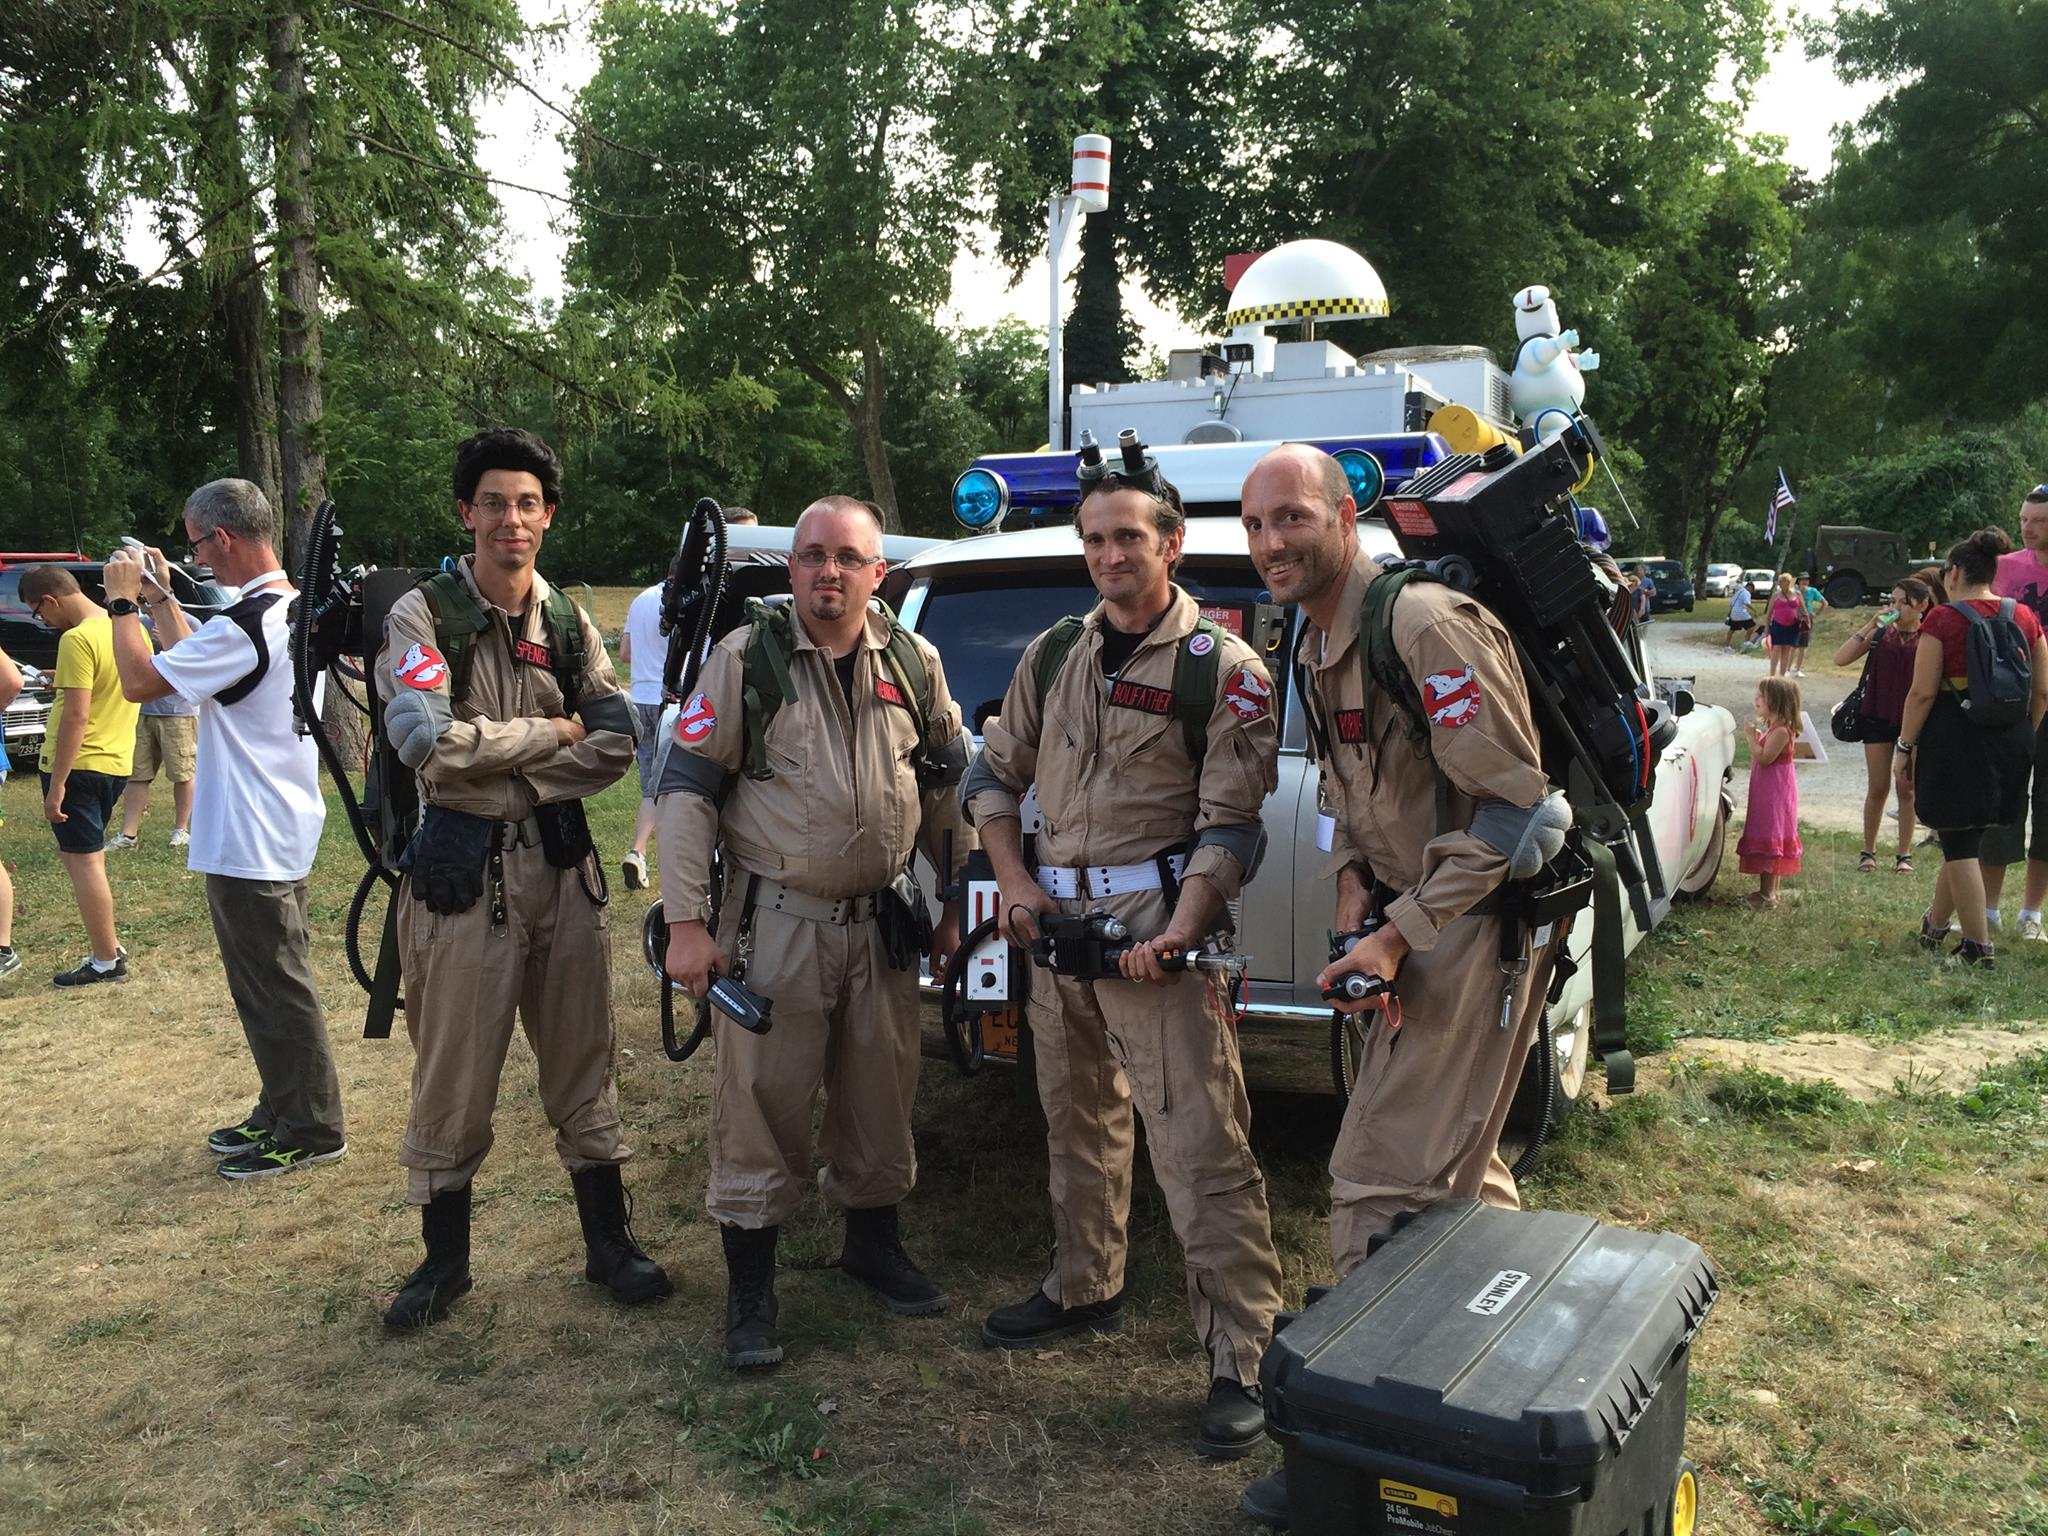 Saint-Dizier France  City pictures : Saint Dizier – Ghostbusters France